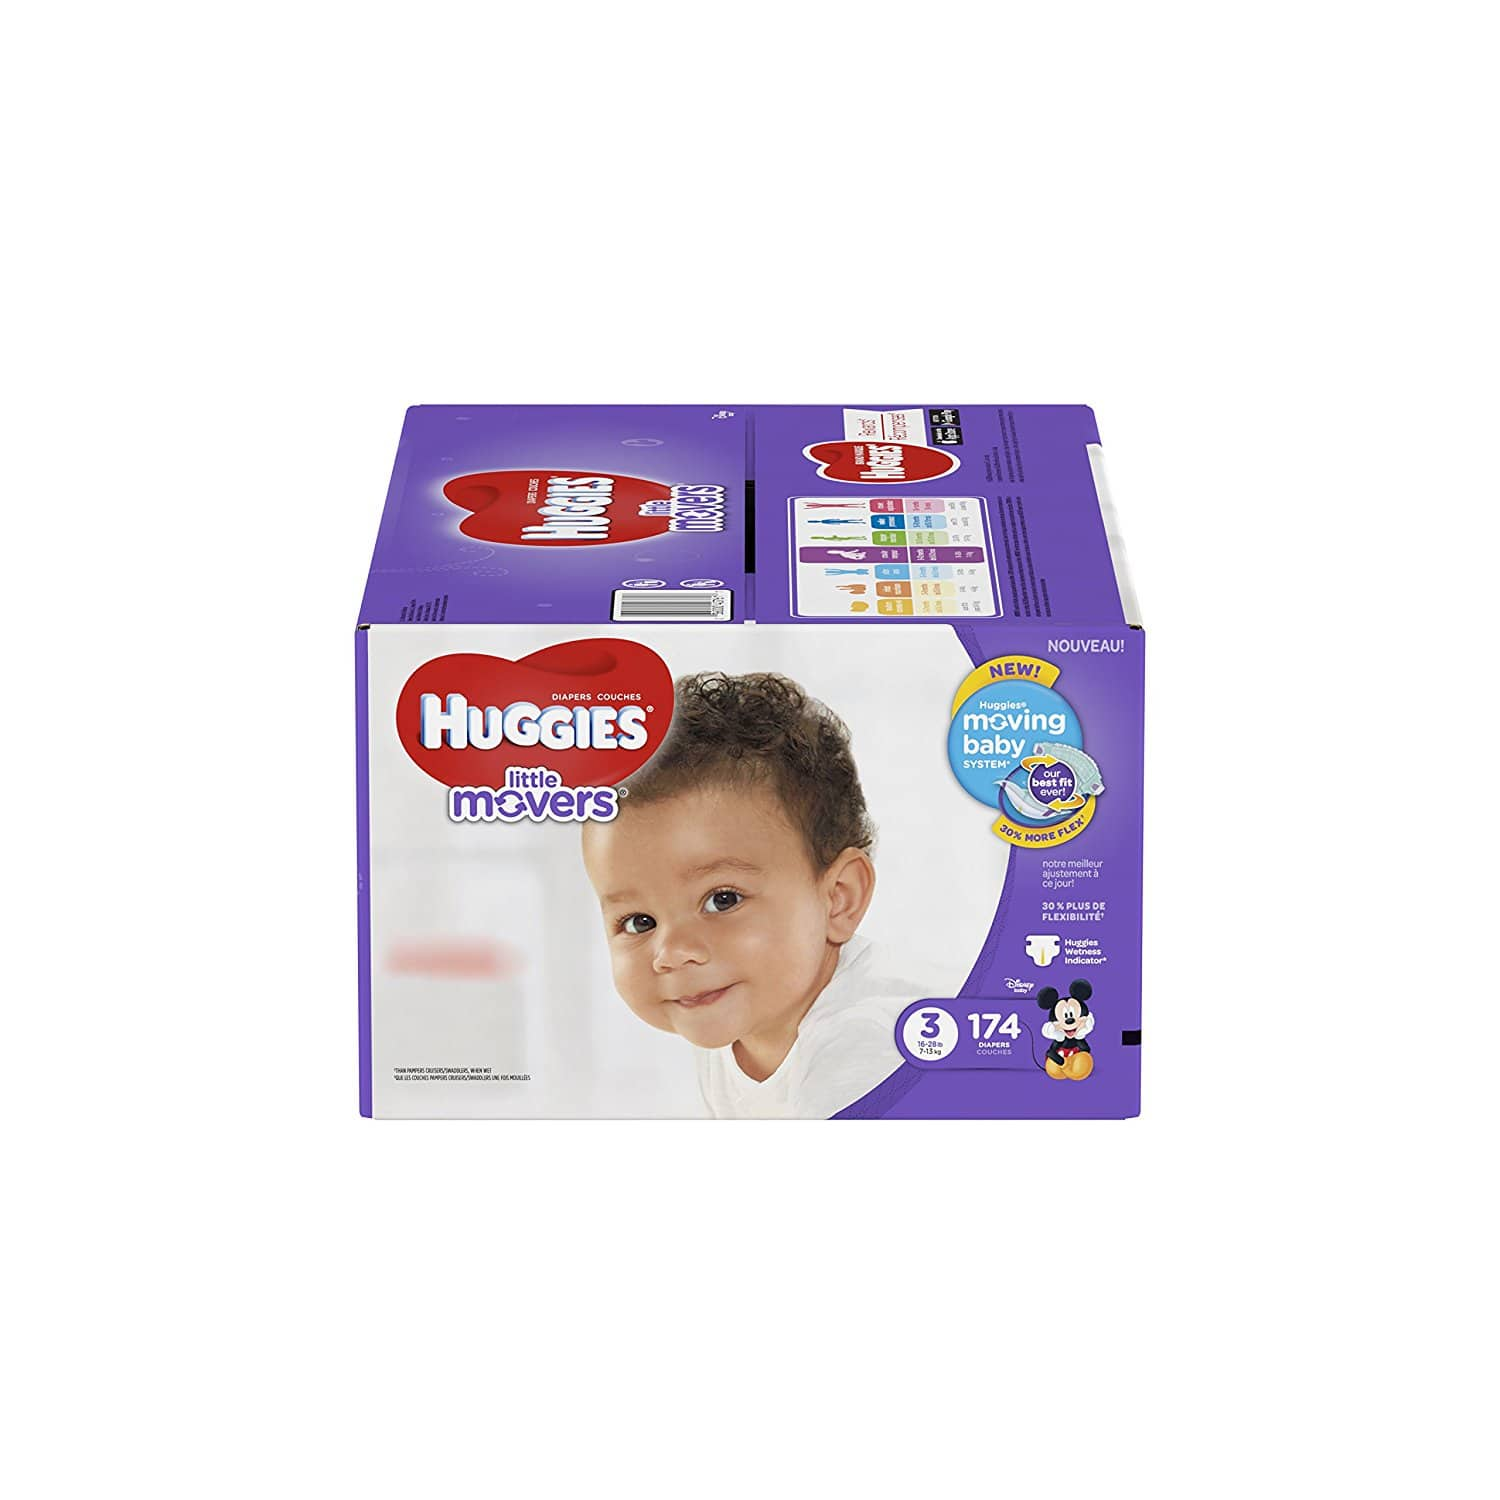 HUGGIES Little Movers Diapers, Size 3, 174 Diapers, $32.29 ($0.19/diaper!) + FREE SHIP W/ PRIME